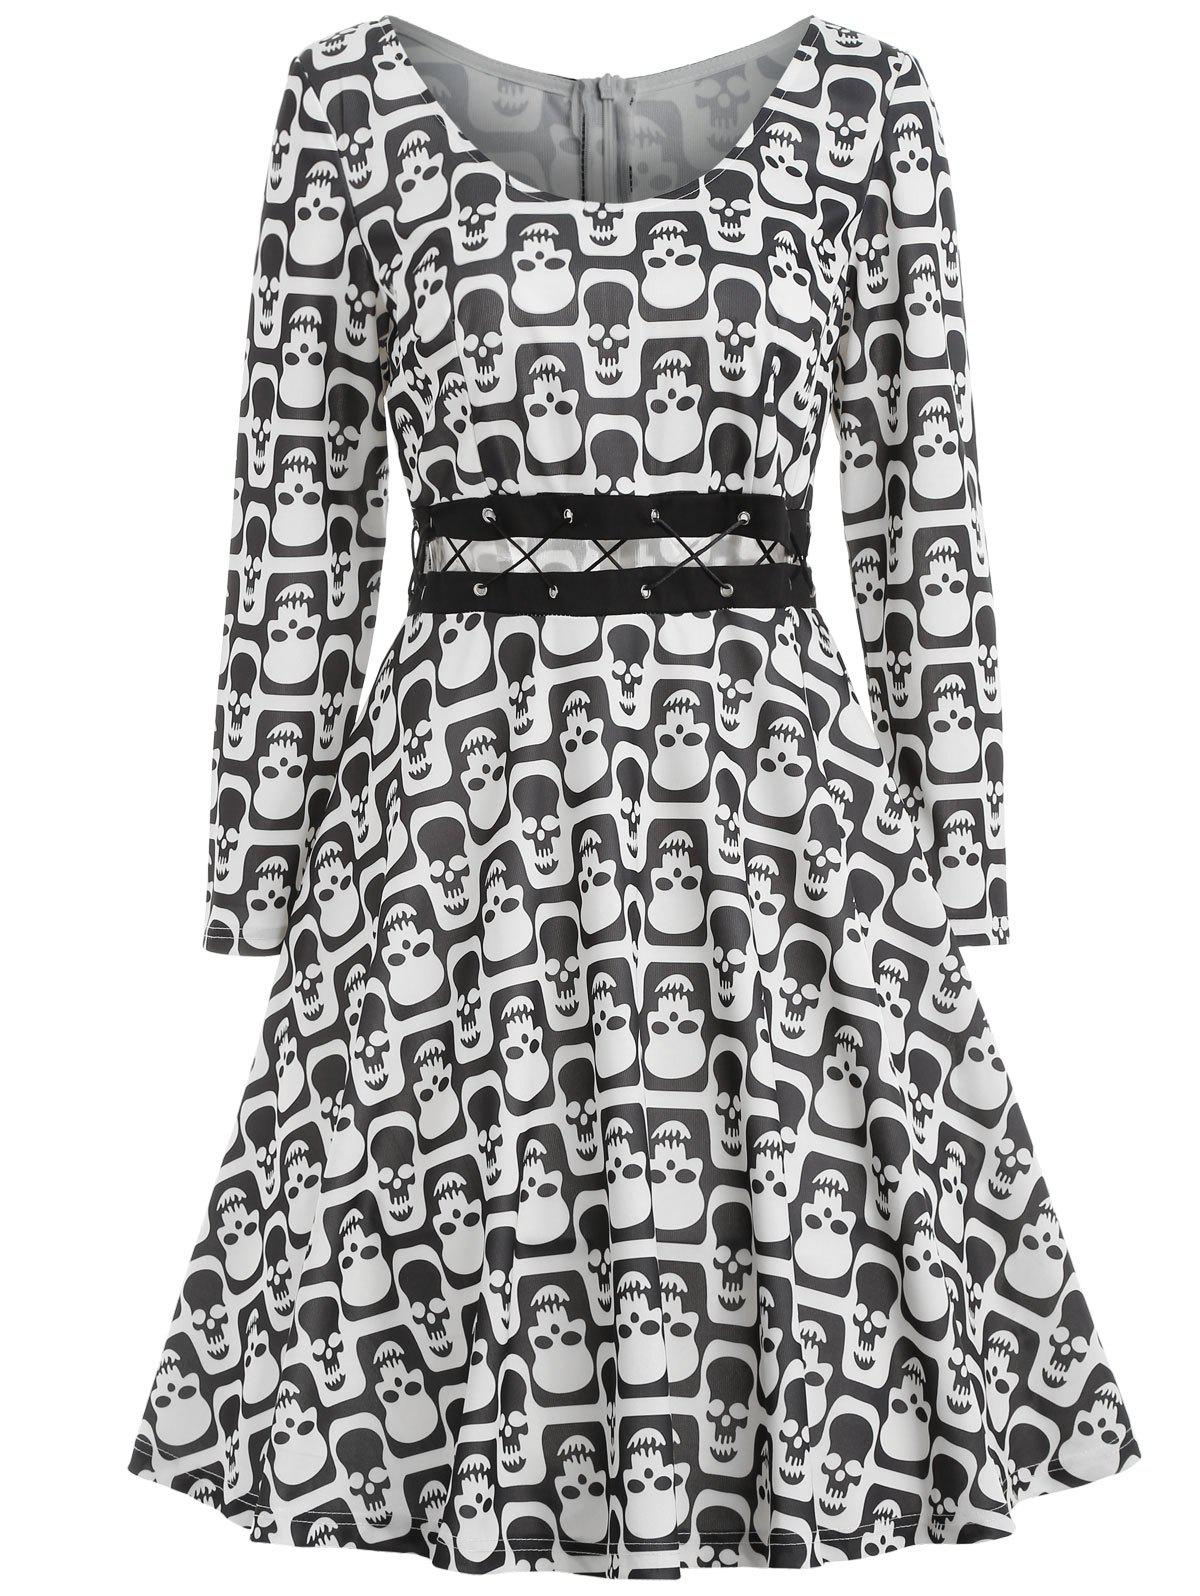 Chic Halloween Skull Print Criss Cross Dress